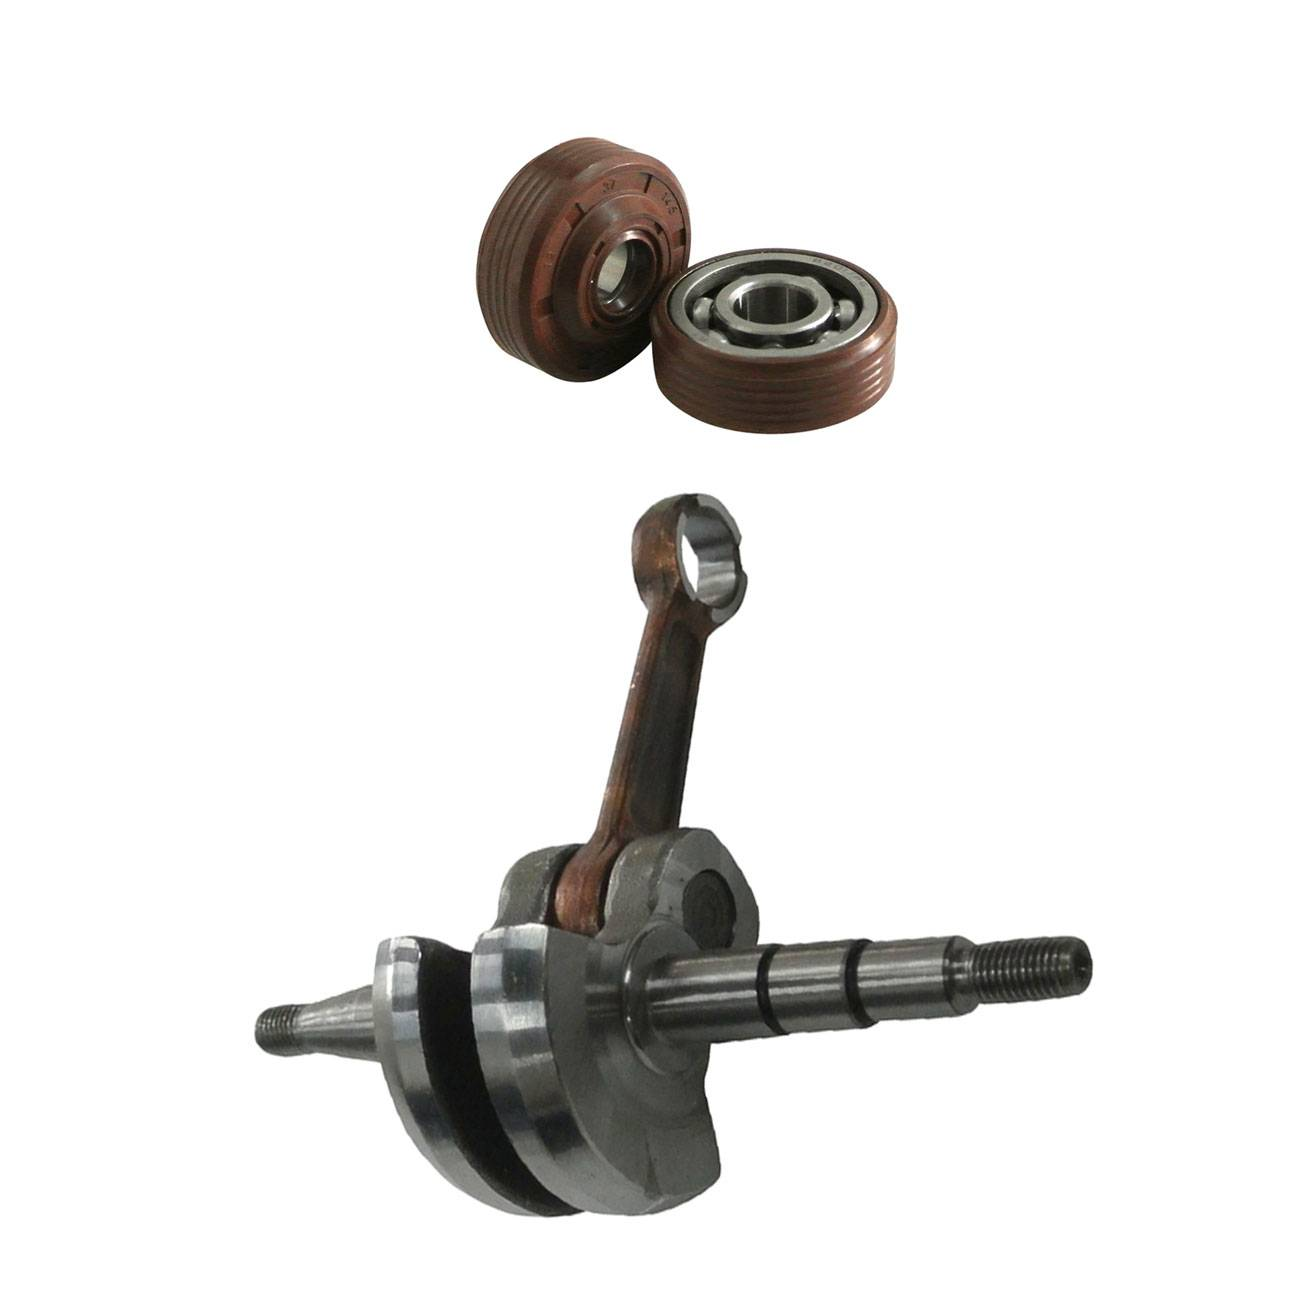 CrankShaft Complete With Bearings And Seals Fit 136 137 141 142 Chainsaw